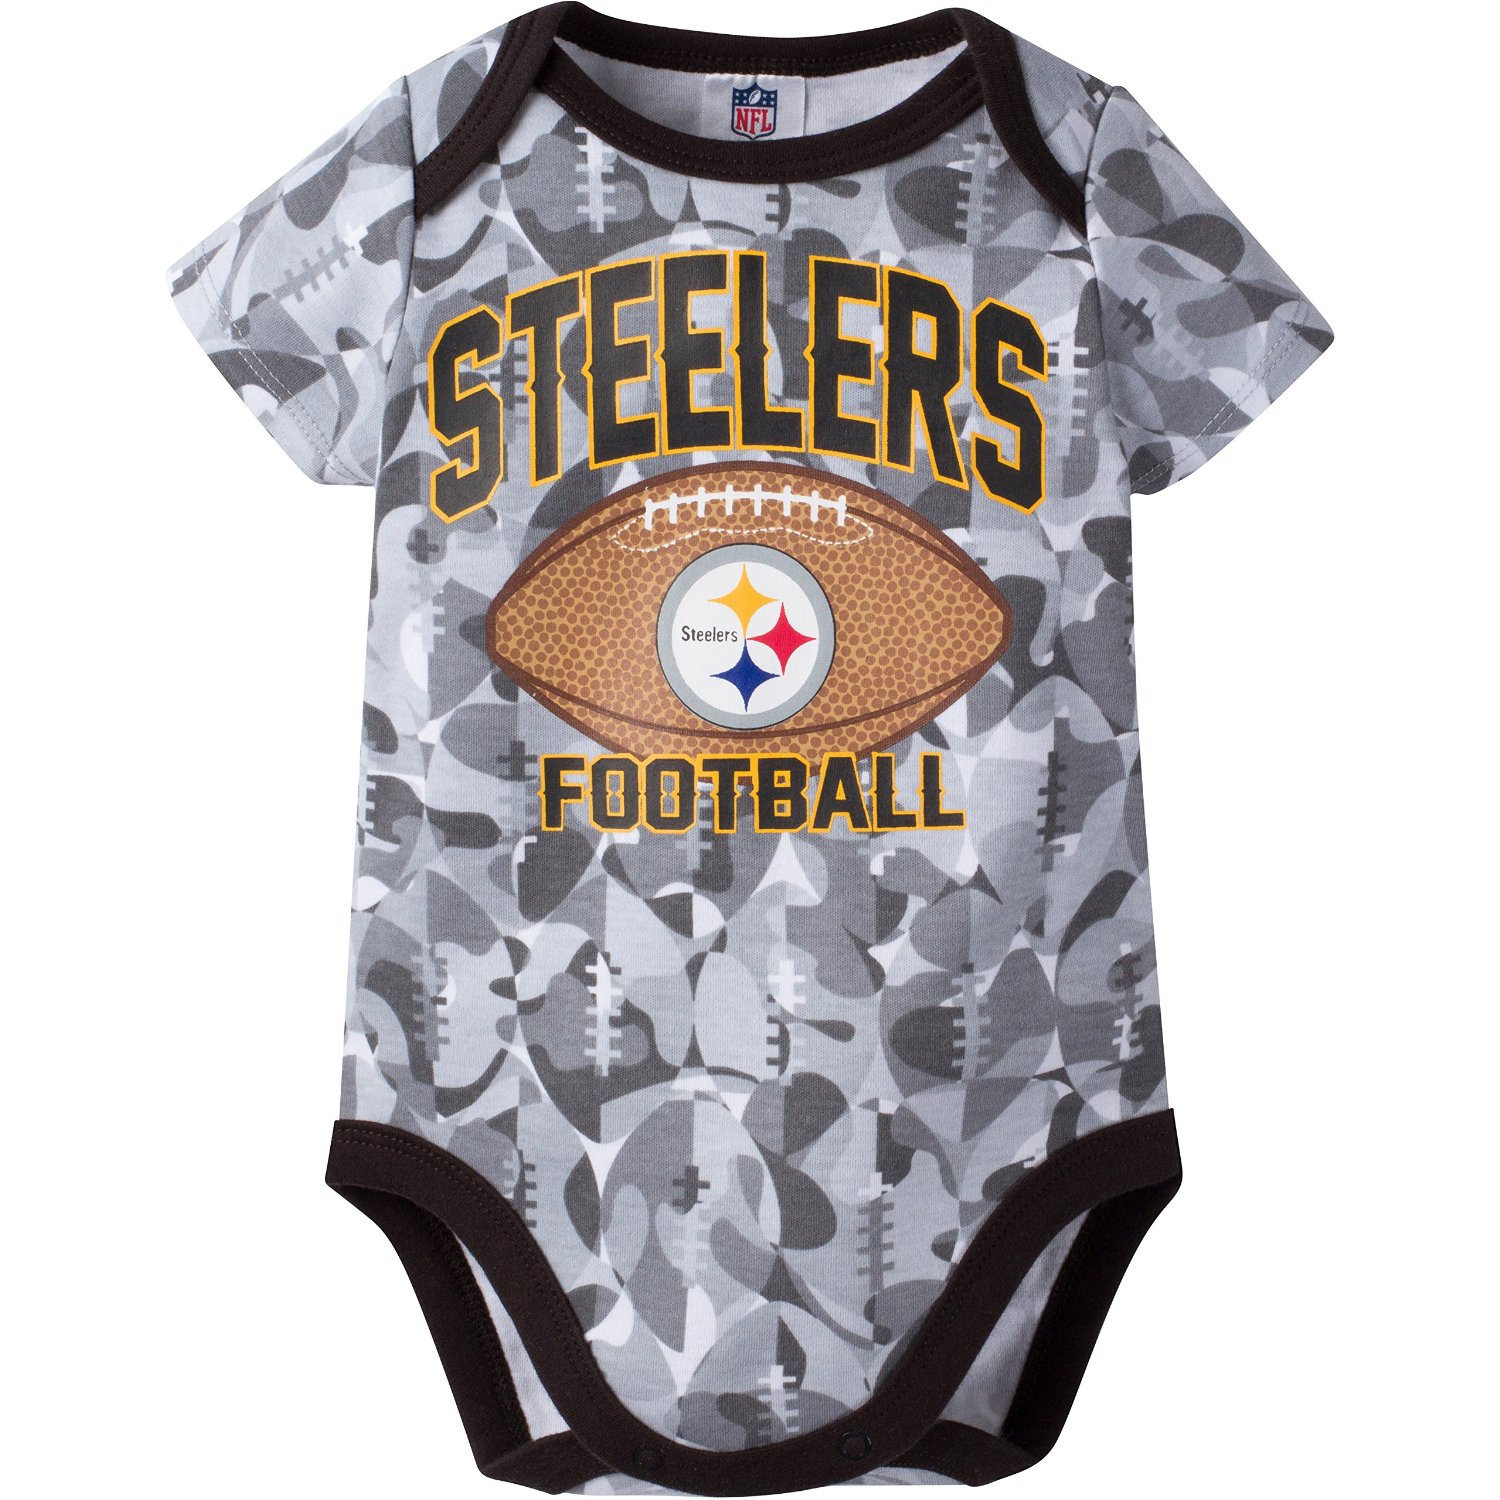 nfl-steelers-football-camo-bodysuit.jpg